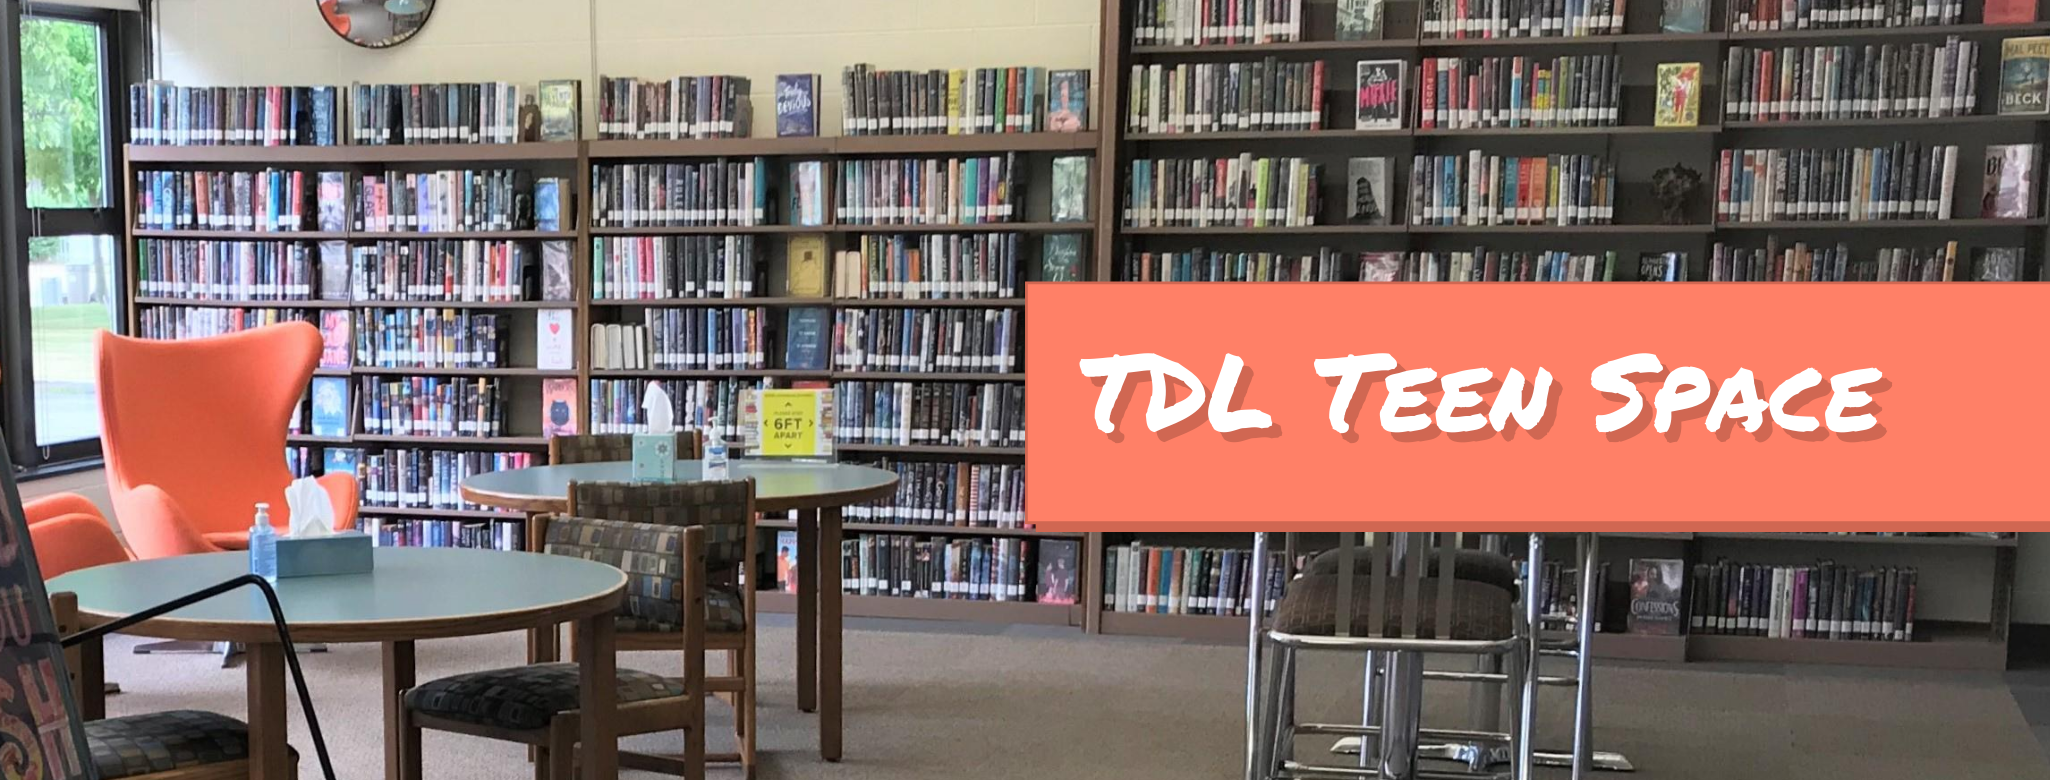 Photo of the bookshelves, chairs, and tables in the teen section with the text TDL Teen Space on an orange banner